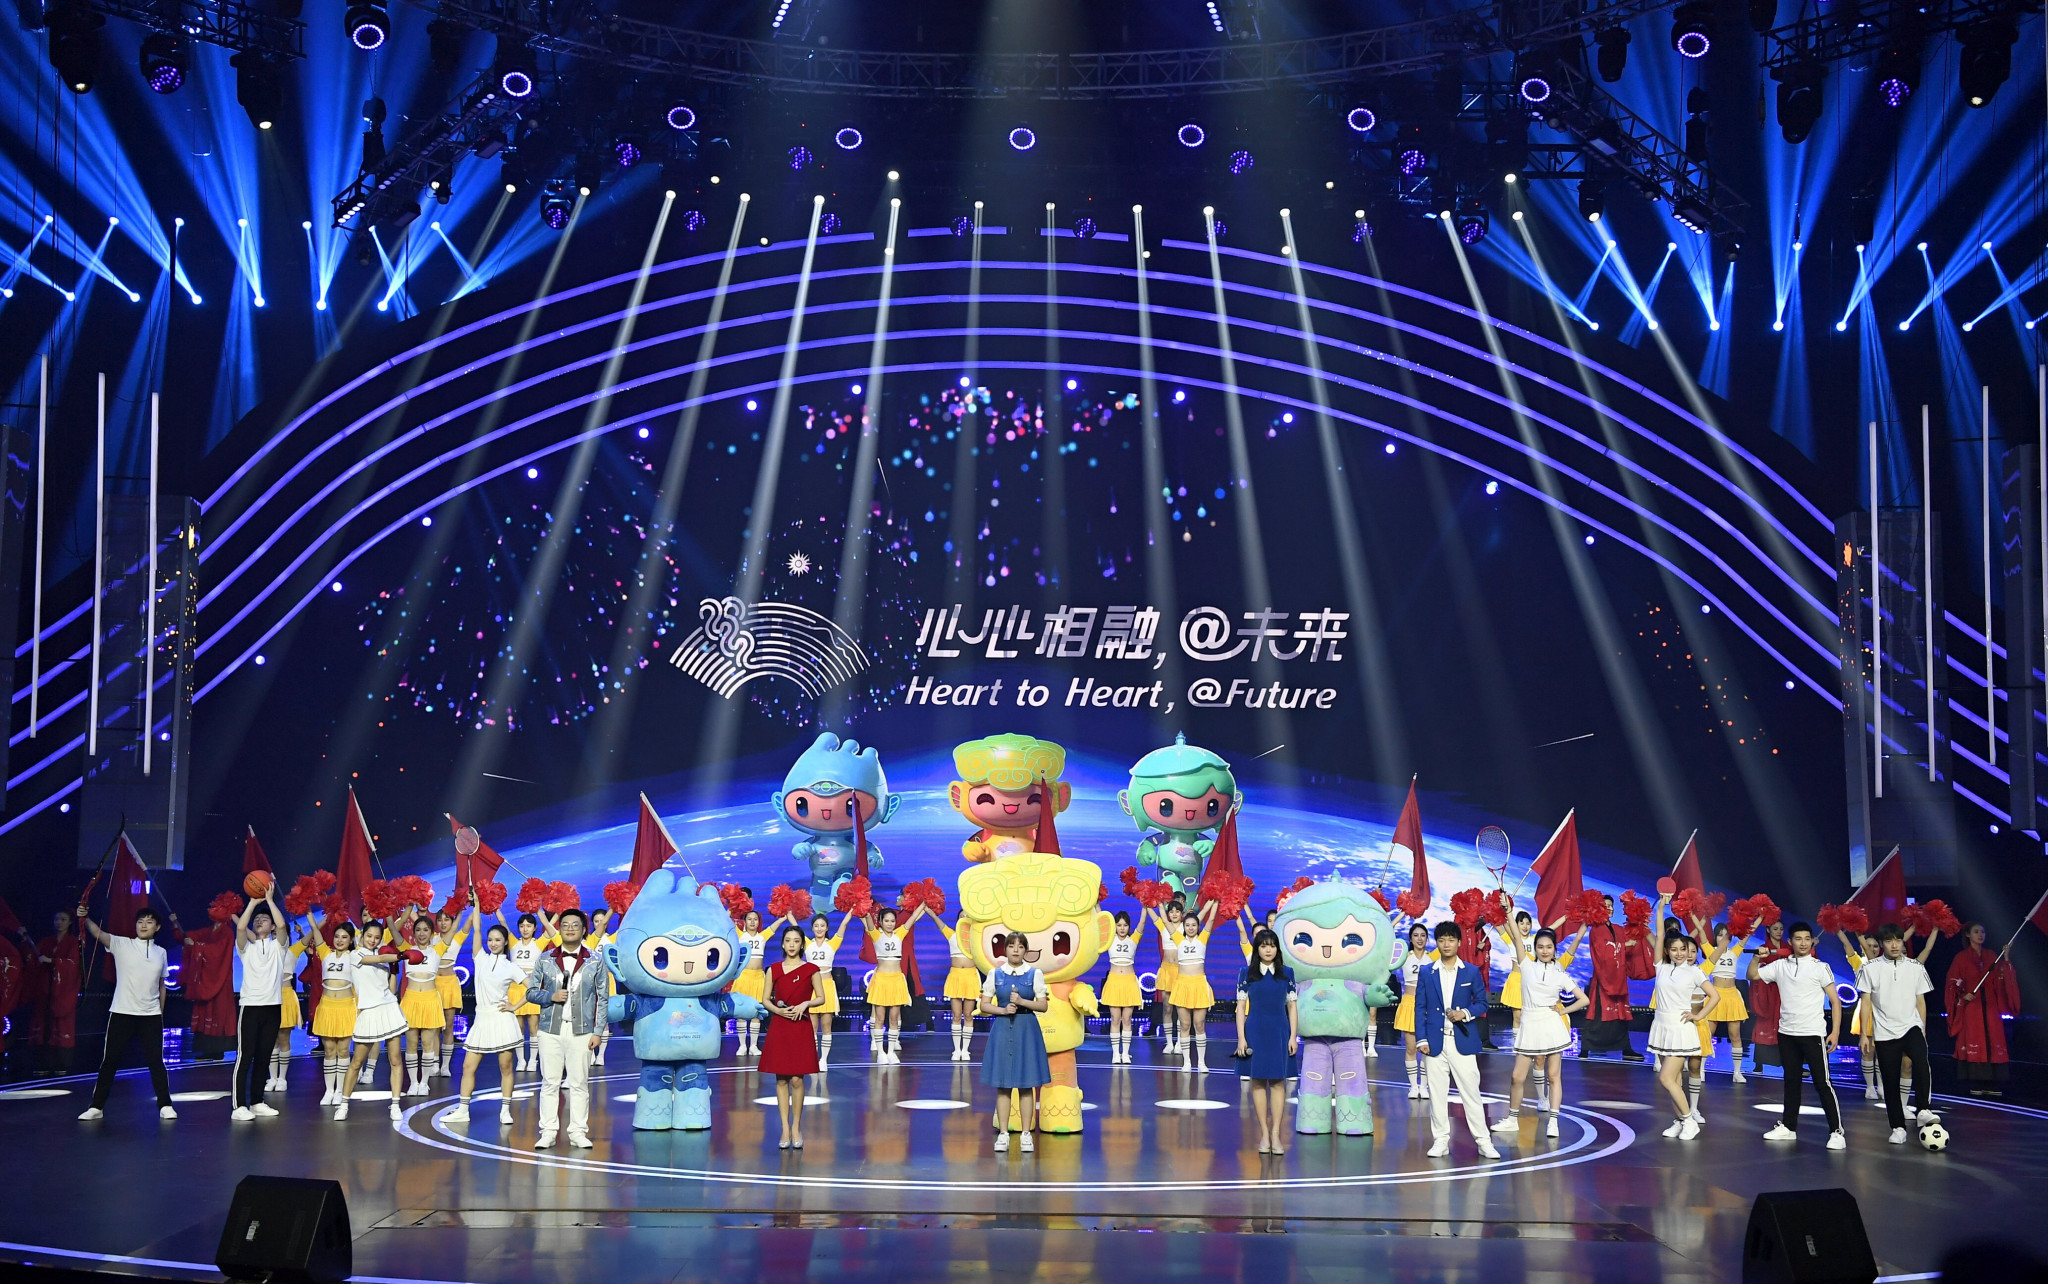 Competition launched to find musical themes for Hangzhou 2022 Asian Games